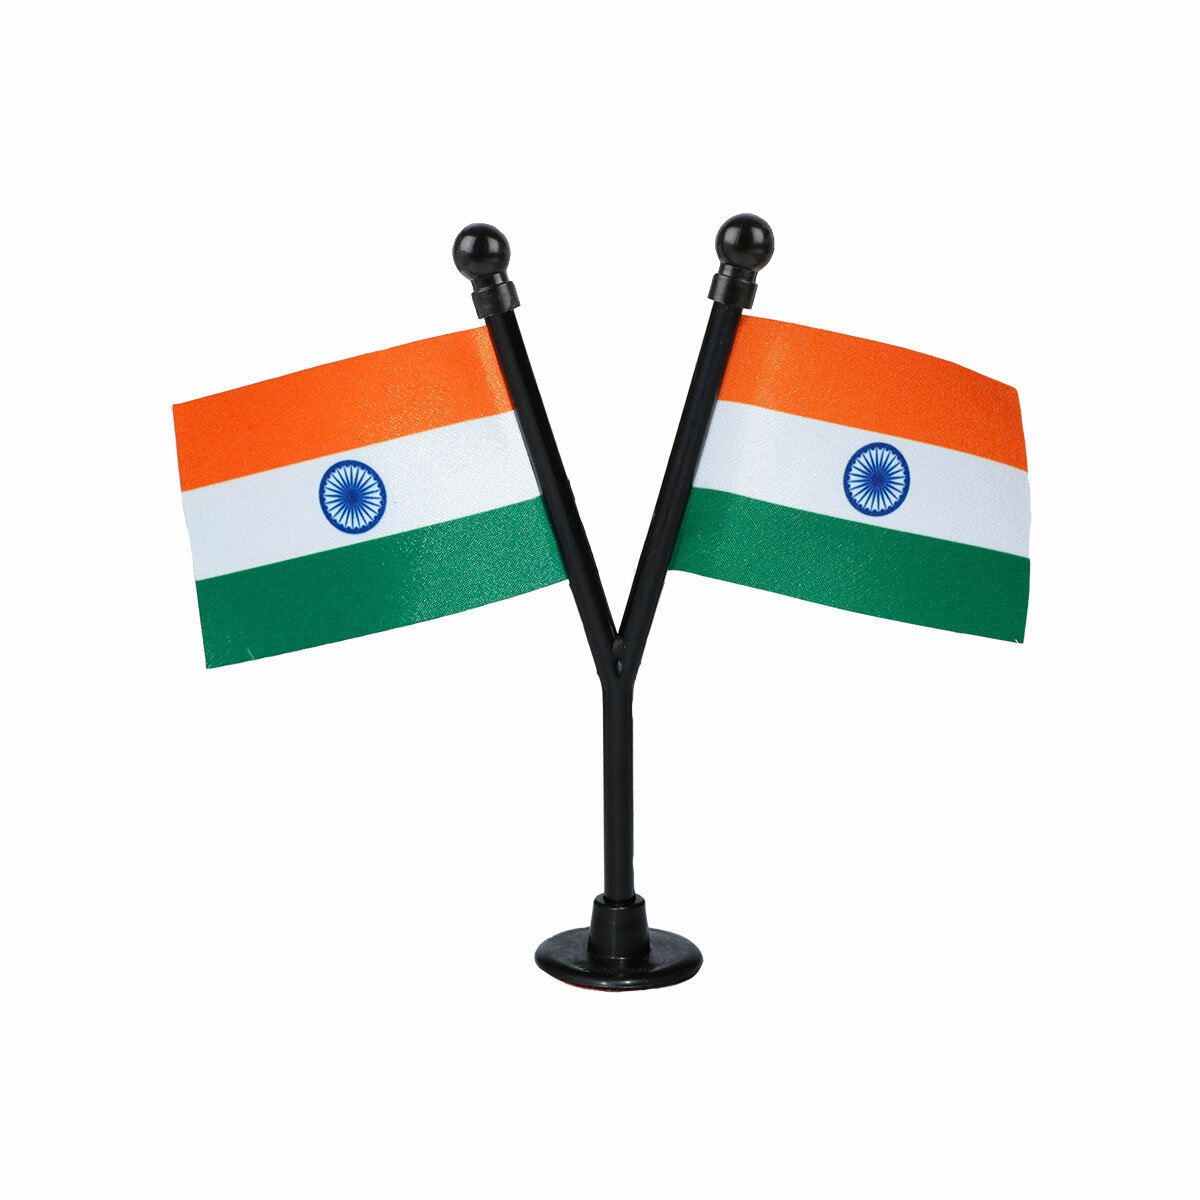 dual indian car dashboard flags with a black plastic stand / base